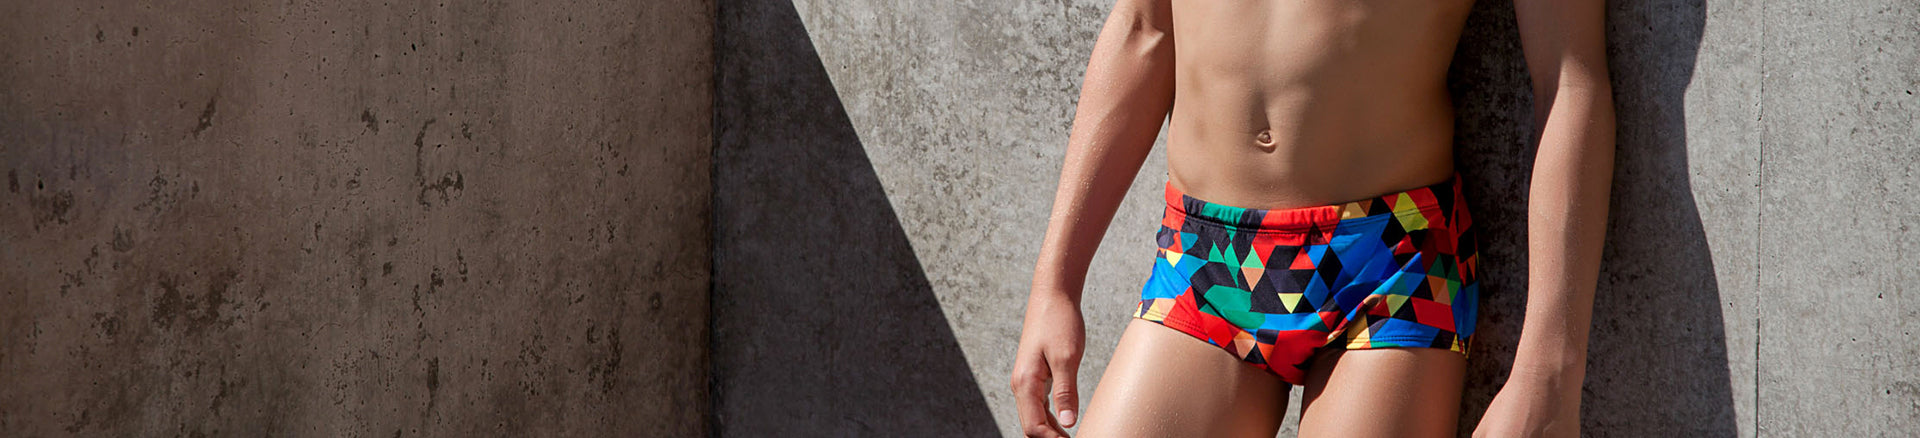 ZEALOUS TRAINING SWIMWEAR - BOY'S TRAINING TRUNKS